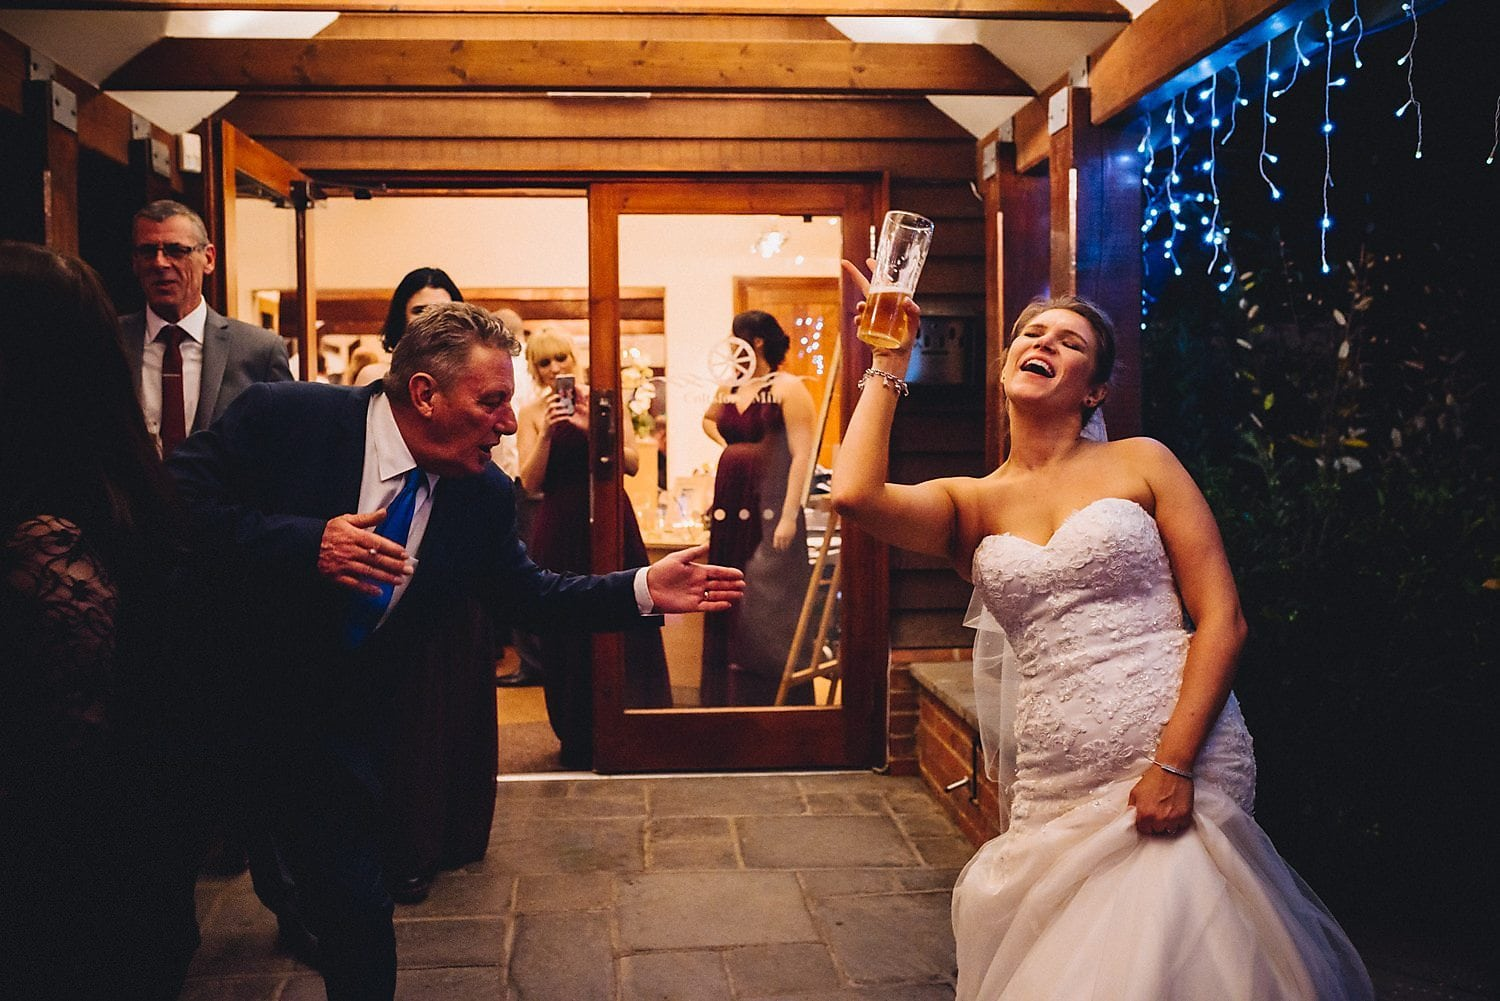 Bride dancing and singing with her uncle at her wedding while holding a pint